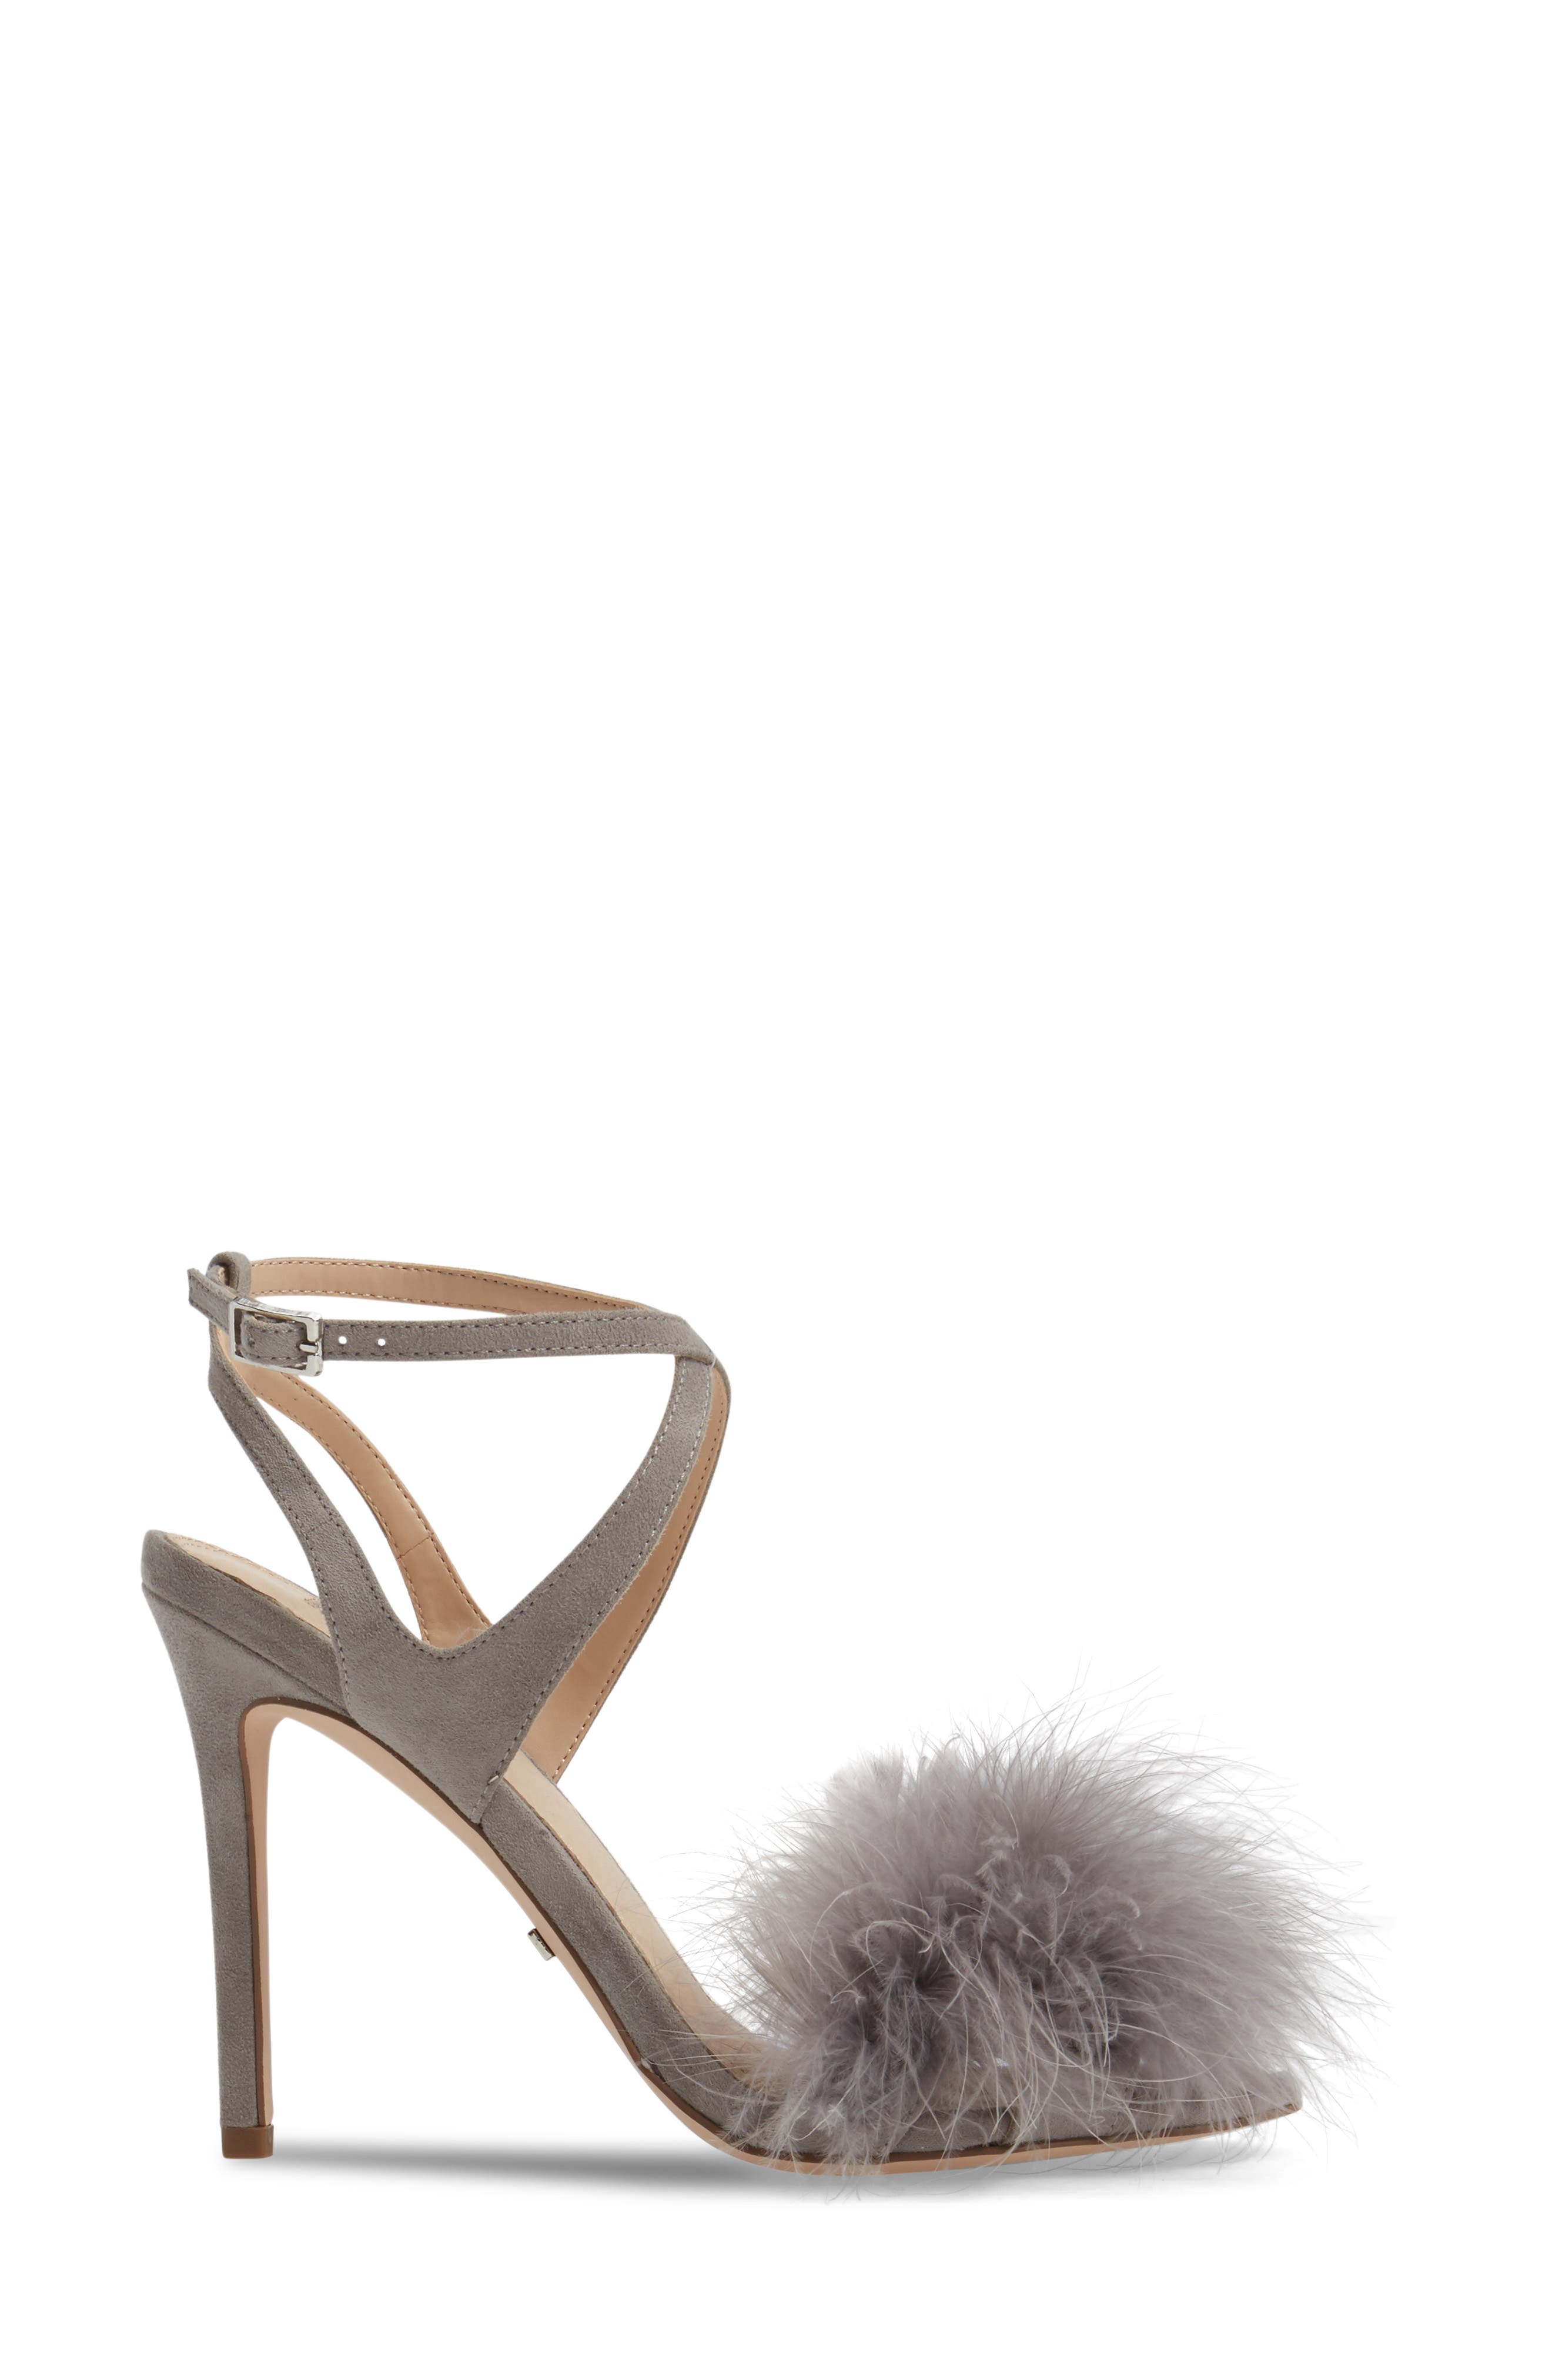 Reine Feathered Sandal,                             Alternate thumbnail 3, color,                             020